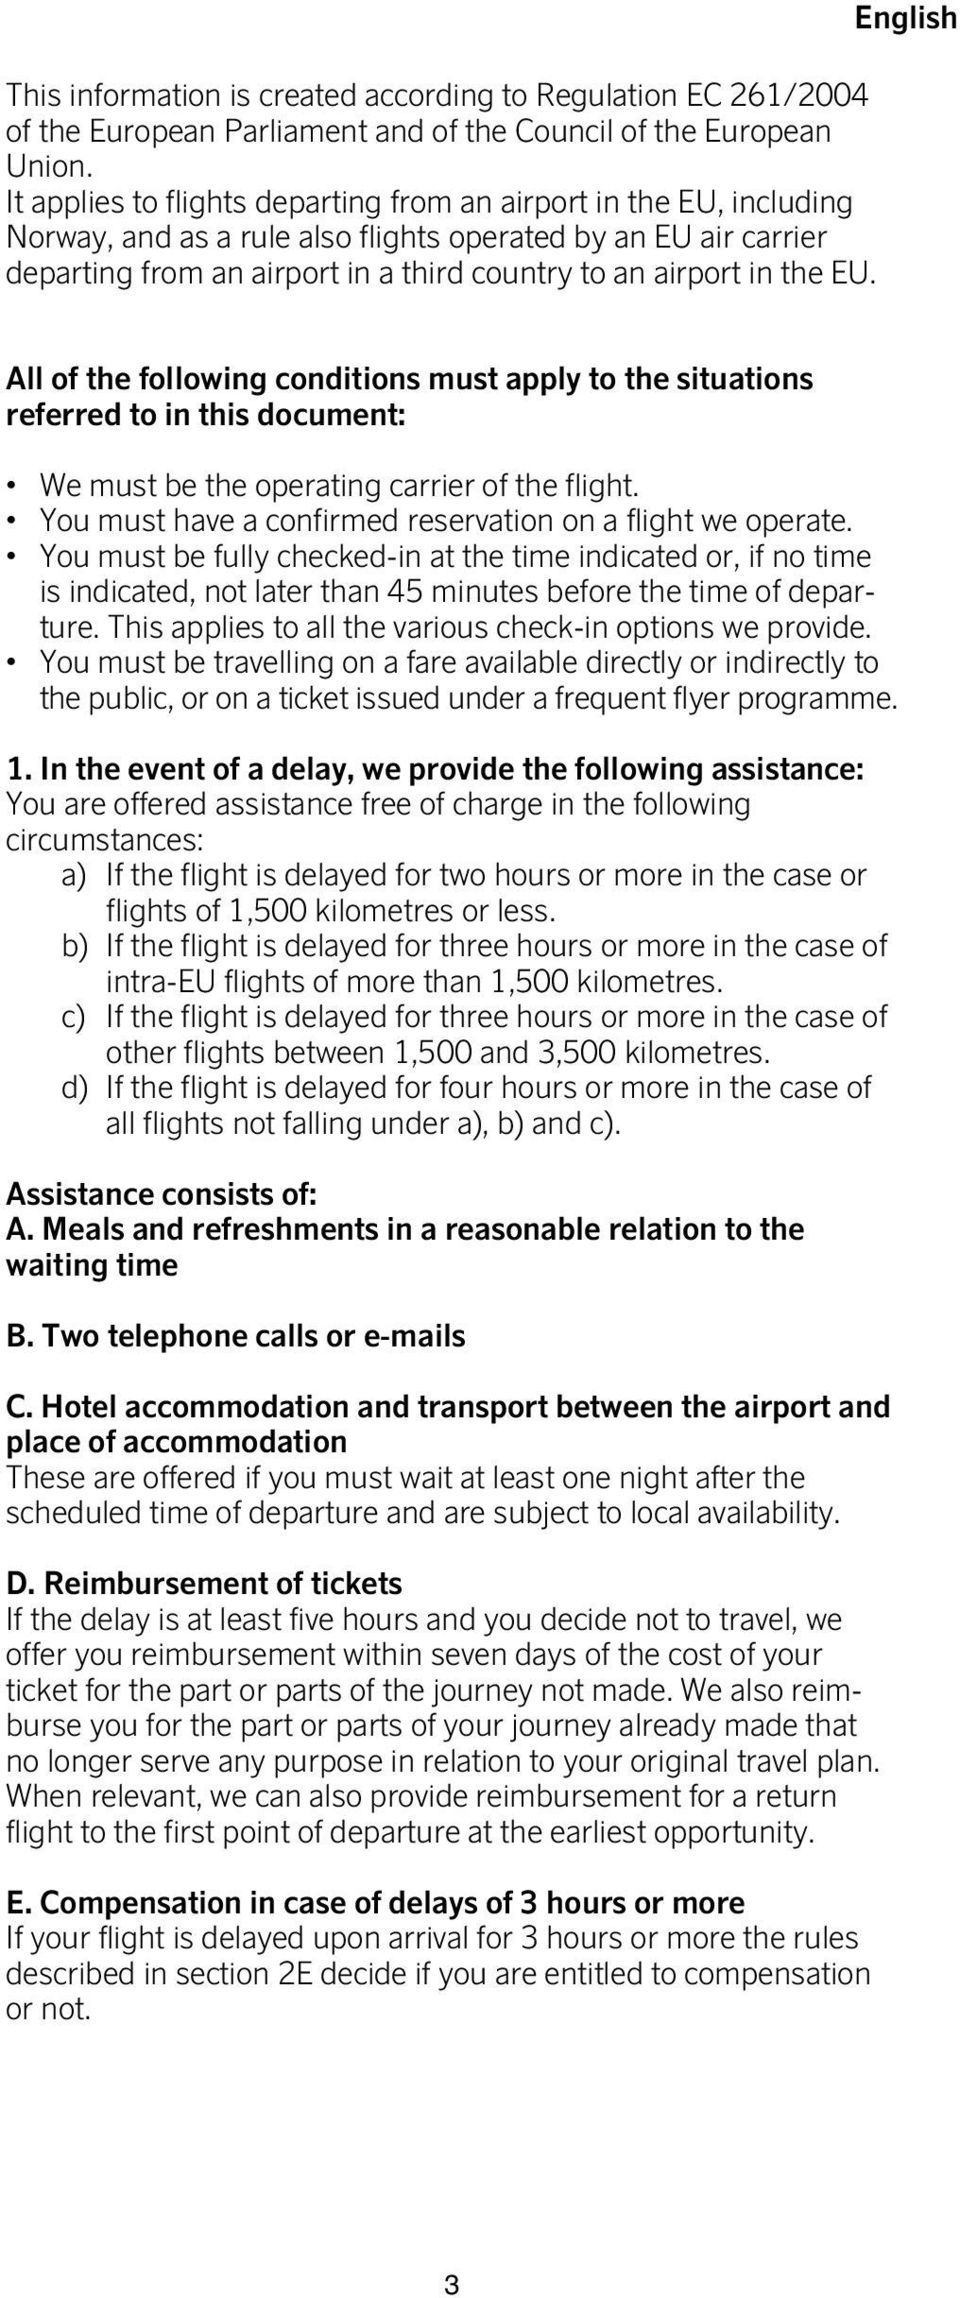 EU. English All of the following conditions must apply to the situations referred to in this document: We must be the operating carrier of the flight.